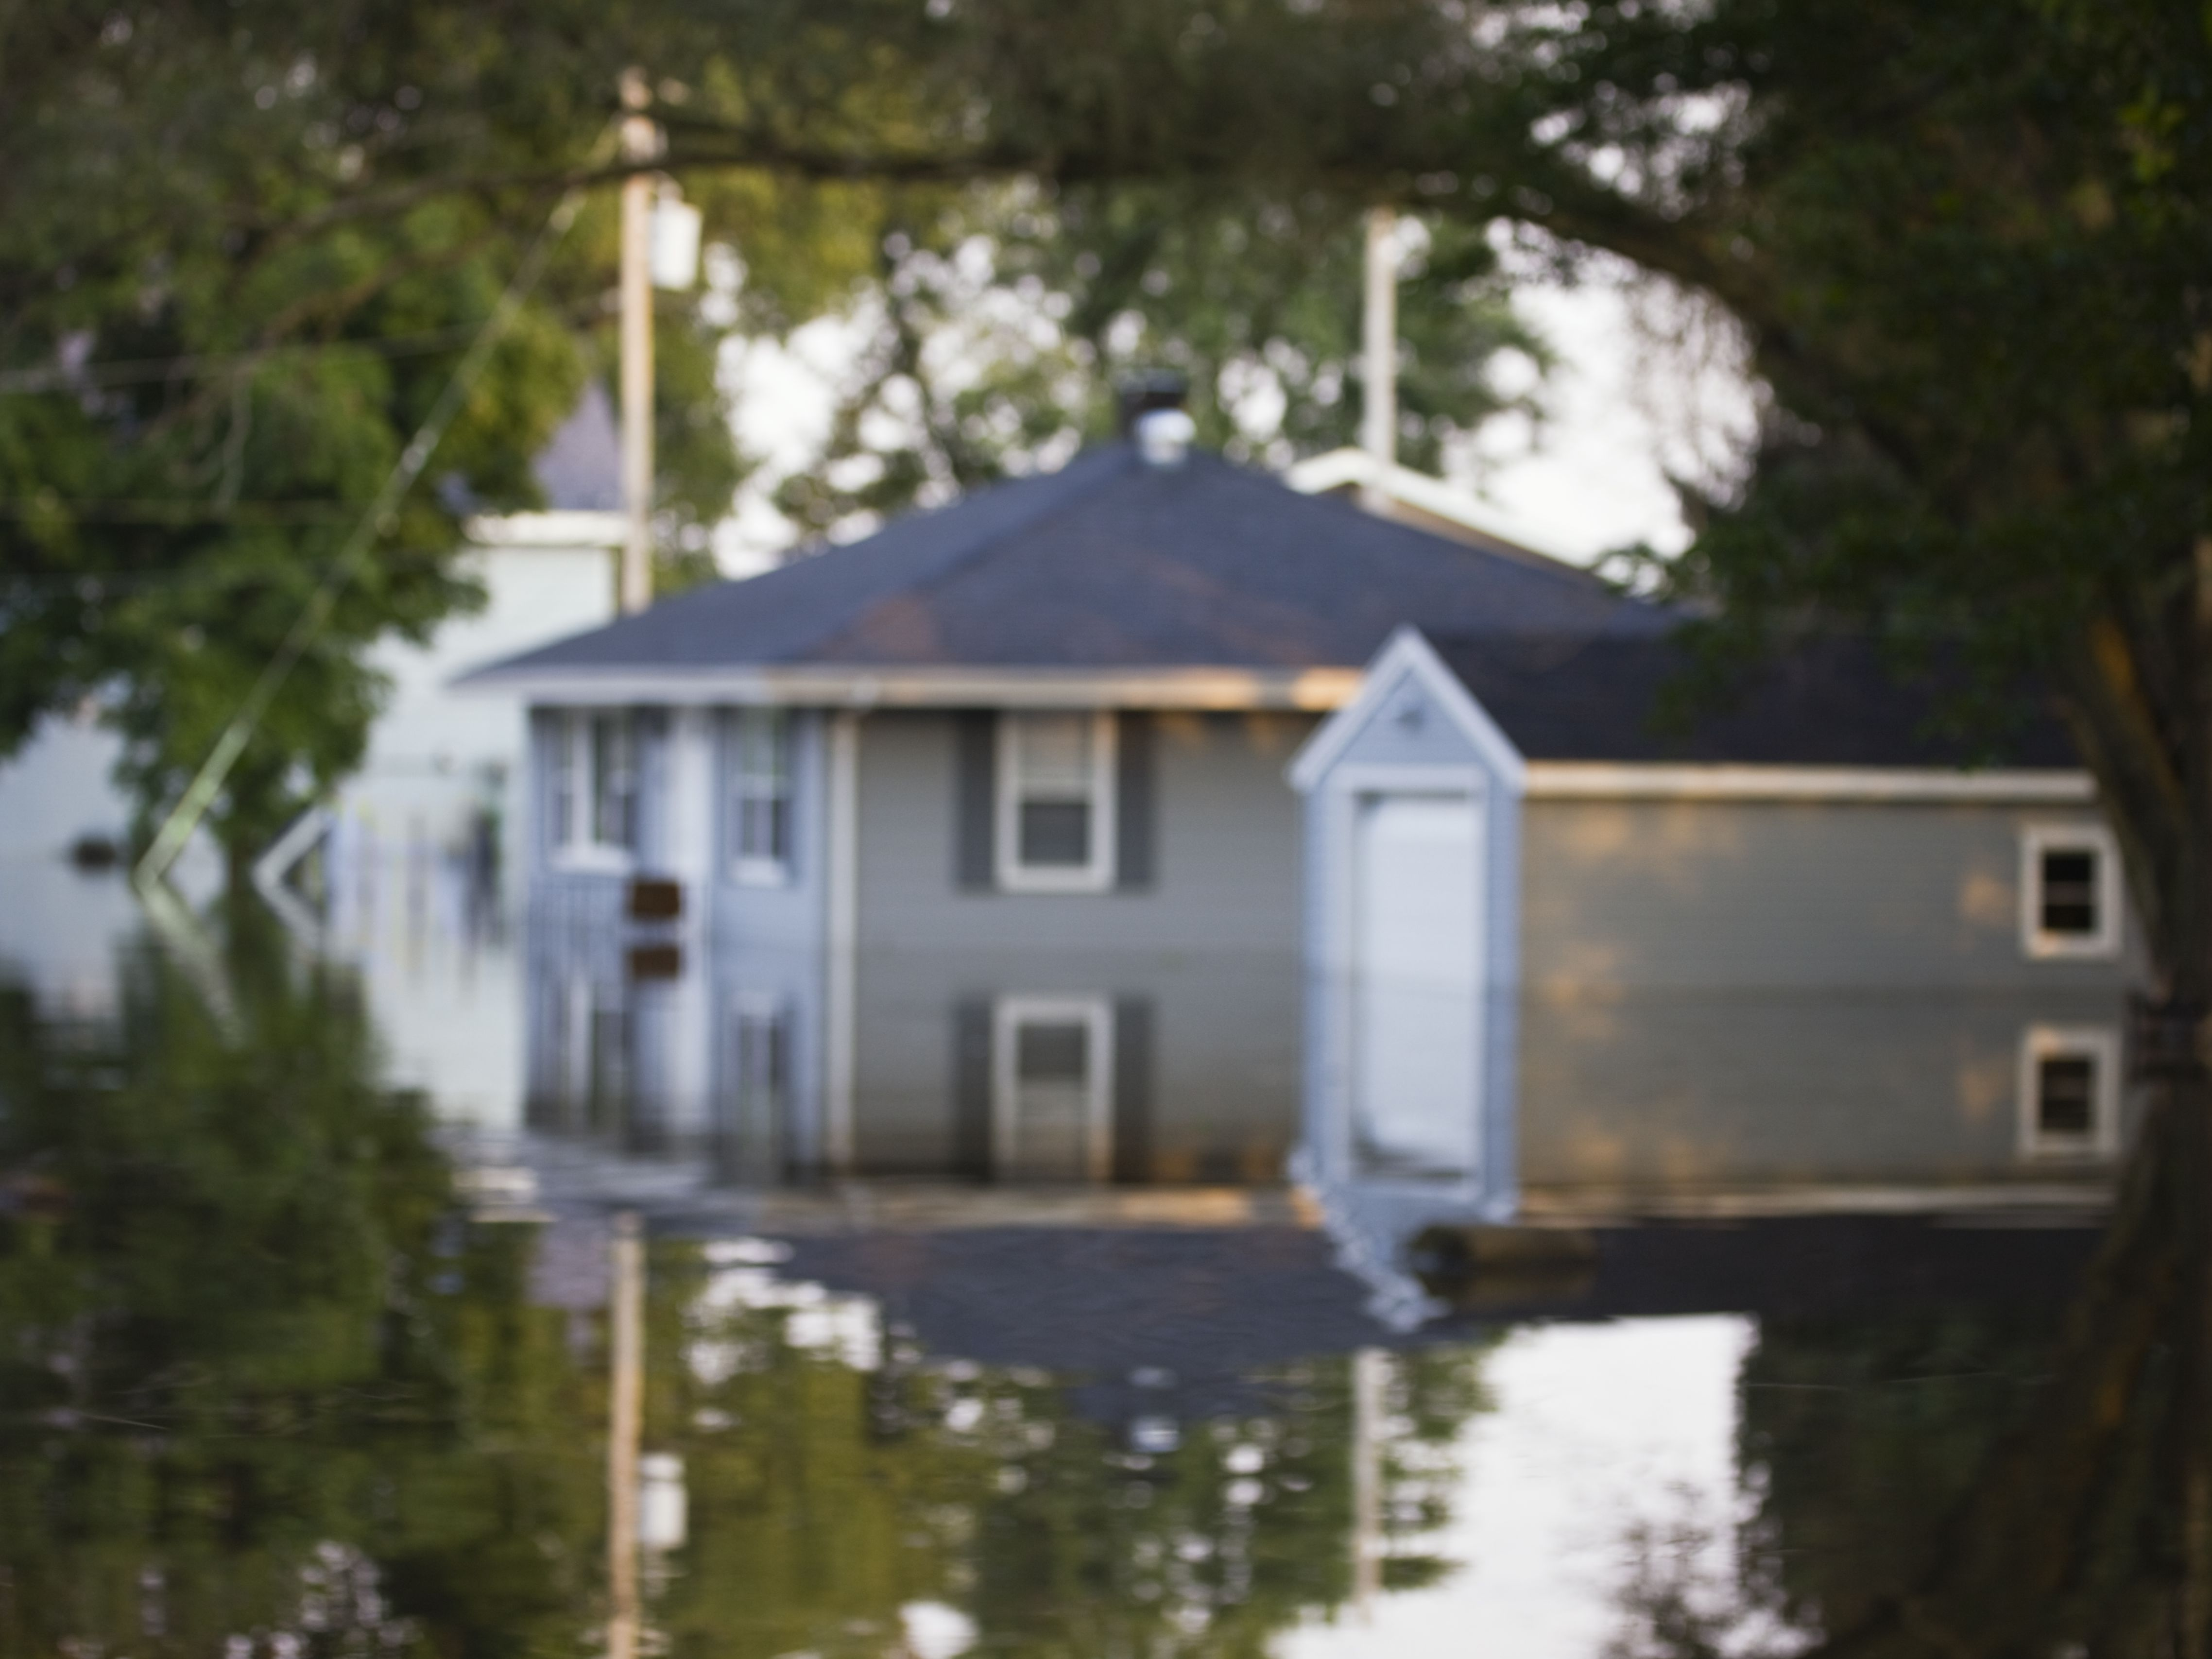 Where to Get Insurance If You Live in a Floodplain on plane toys, plane photography, plane blueprints, plane advertising, plane doors, plane crafts,